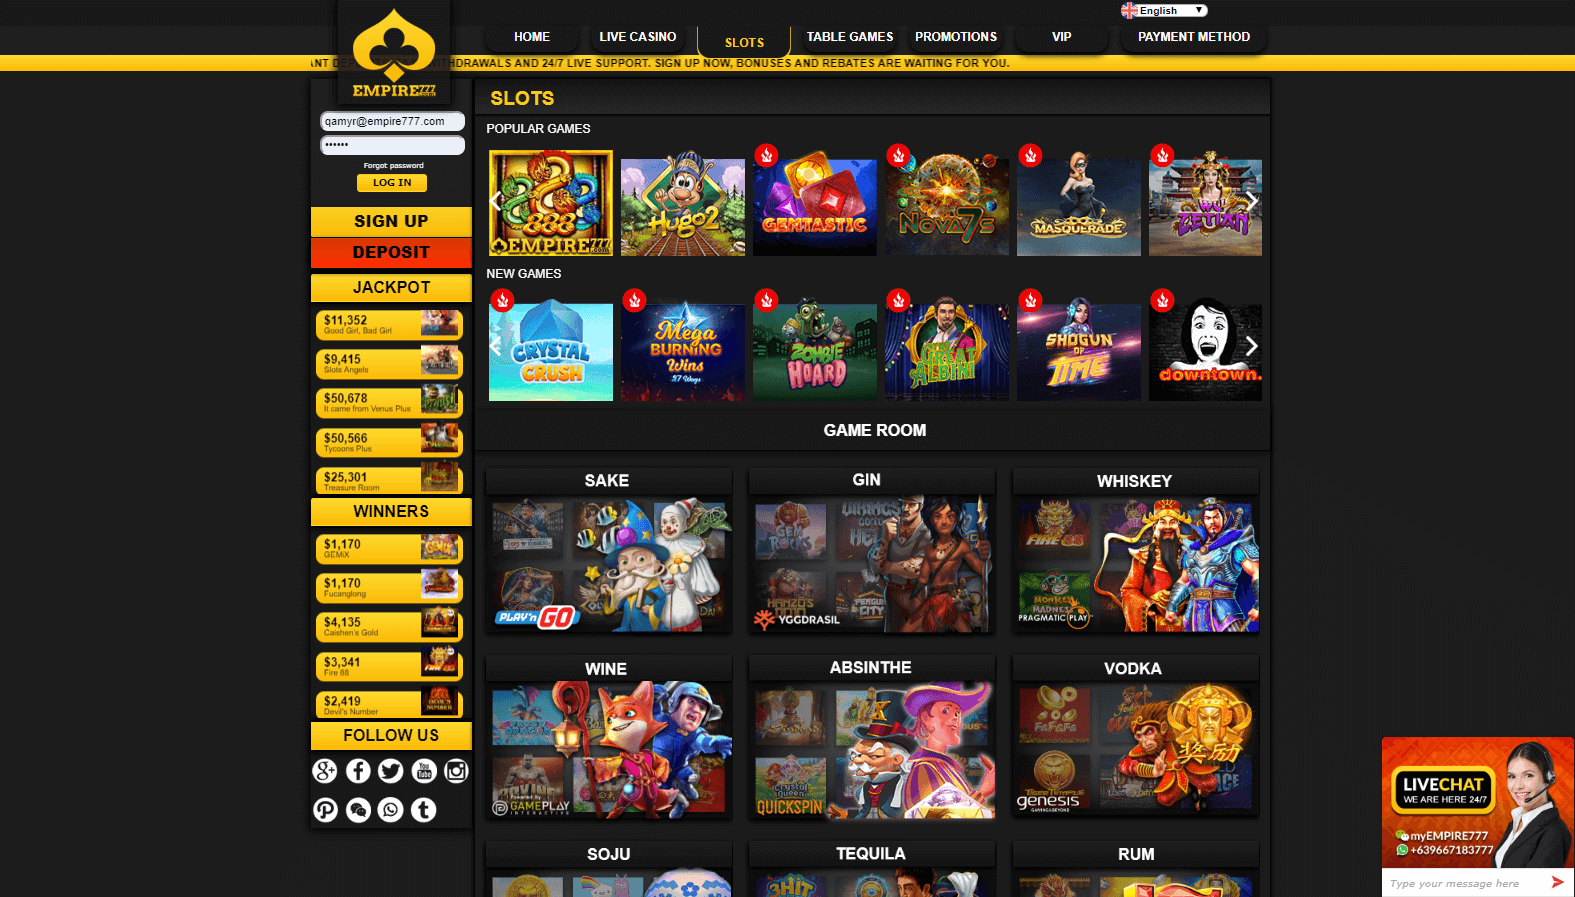 EMPIRE777 Casino's many slot games